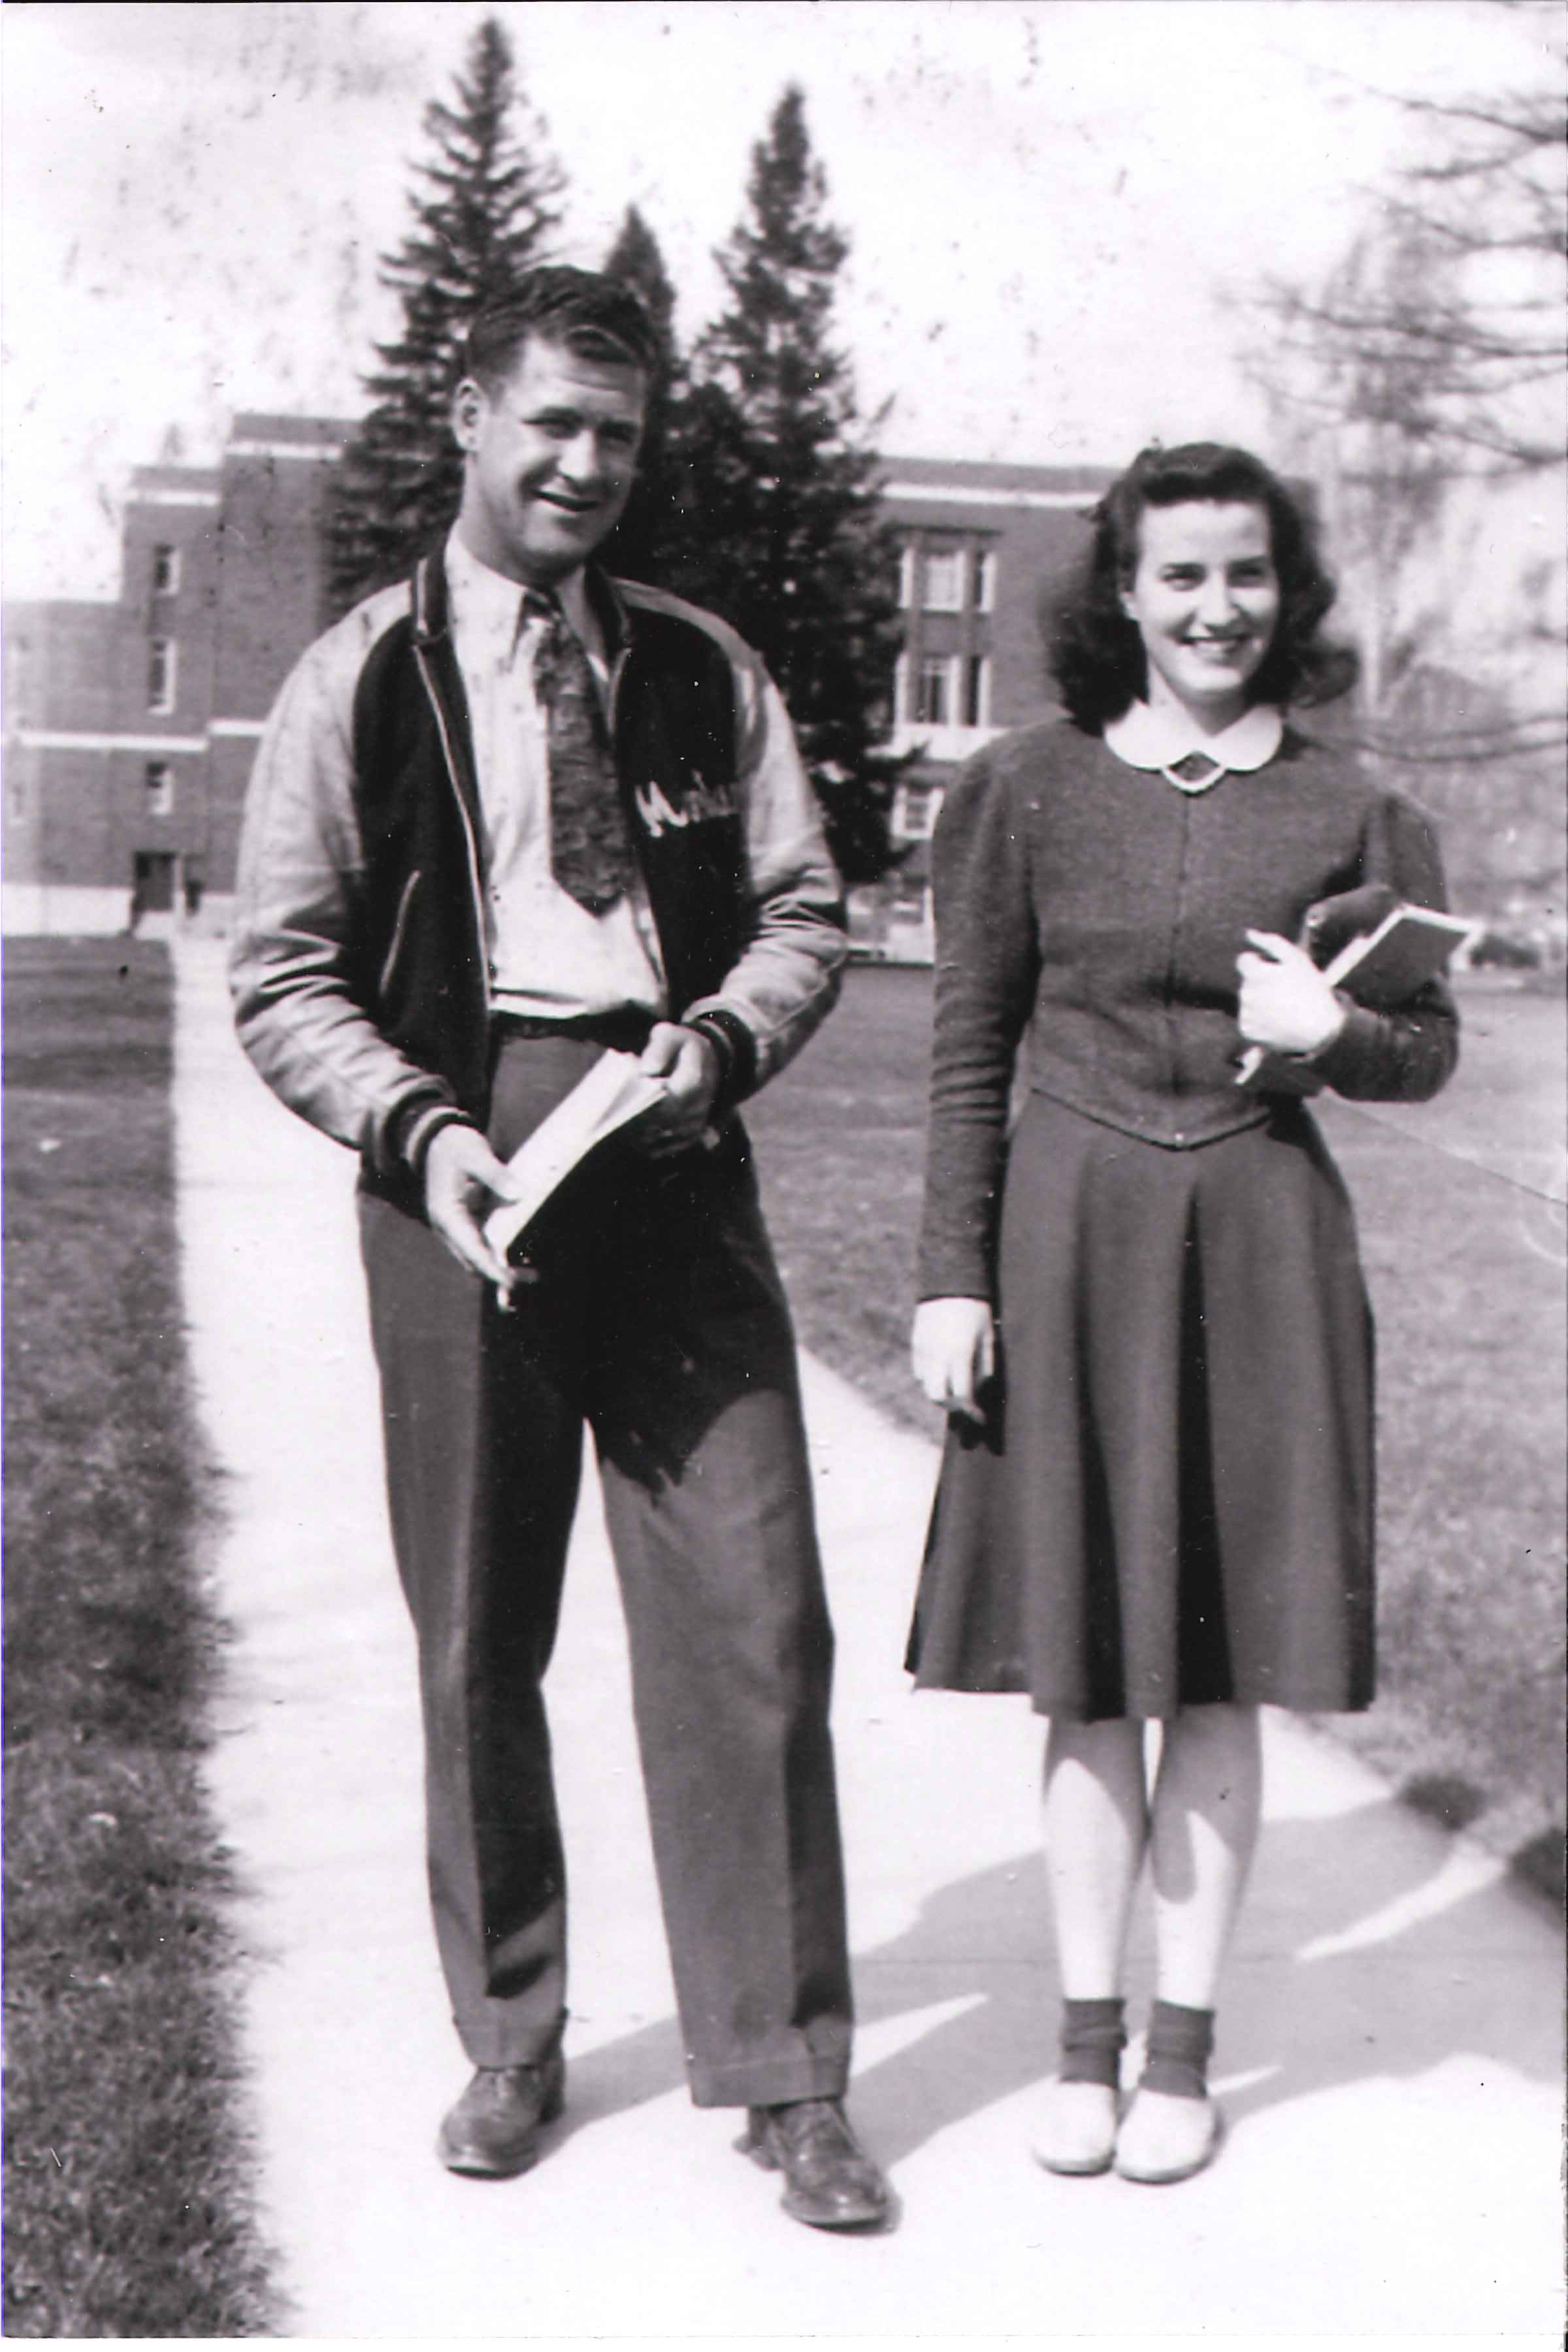 Tom O'Donnell and Barbara Adams met on UM's campus in the spring of 1940